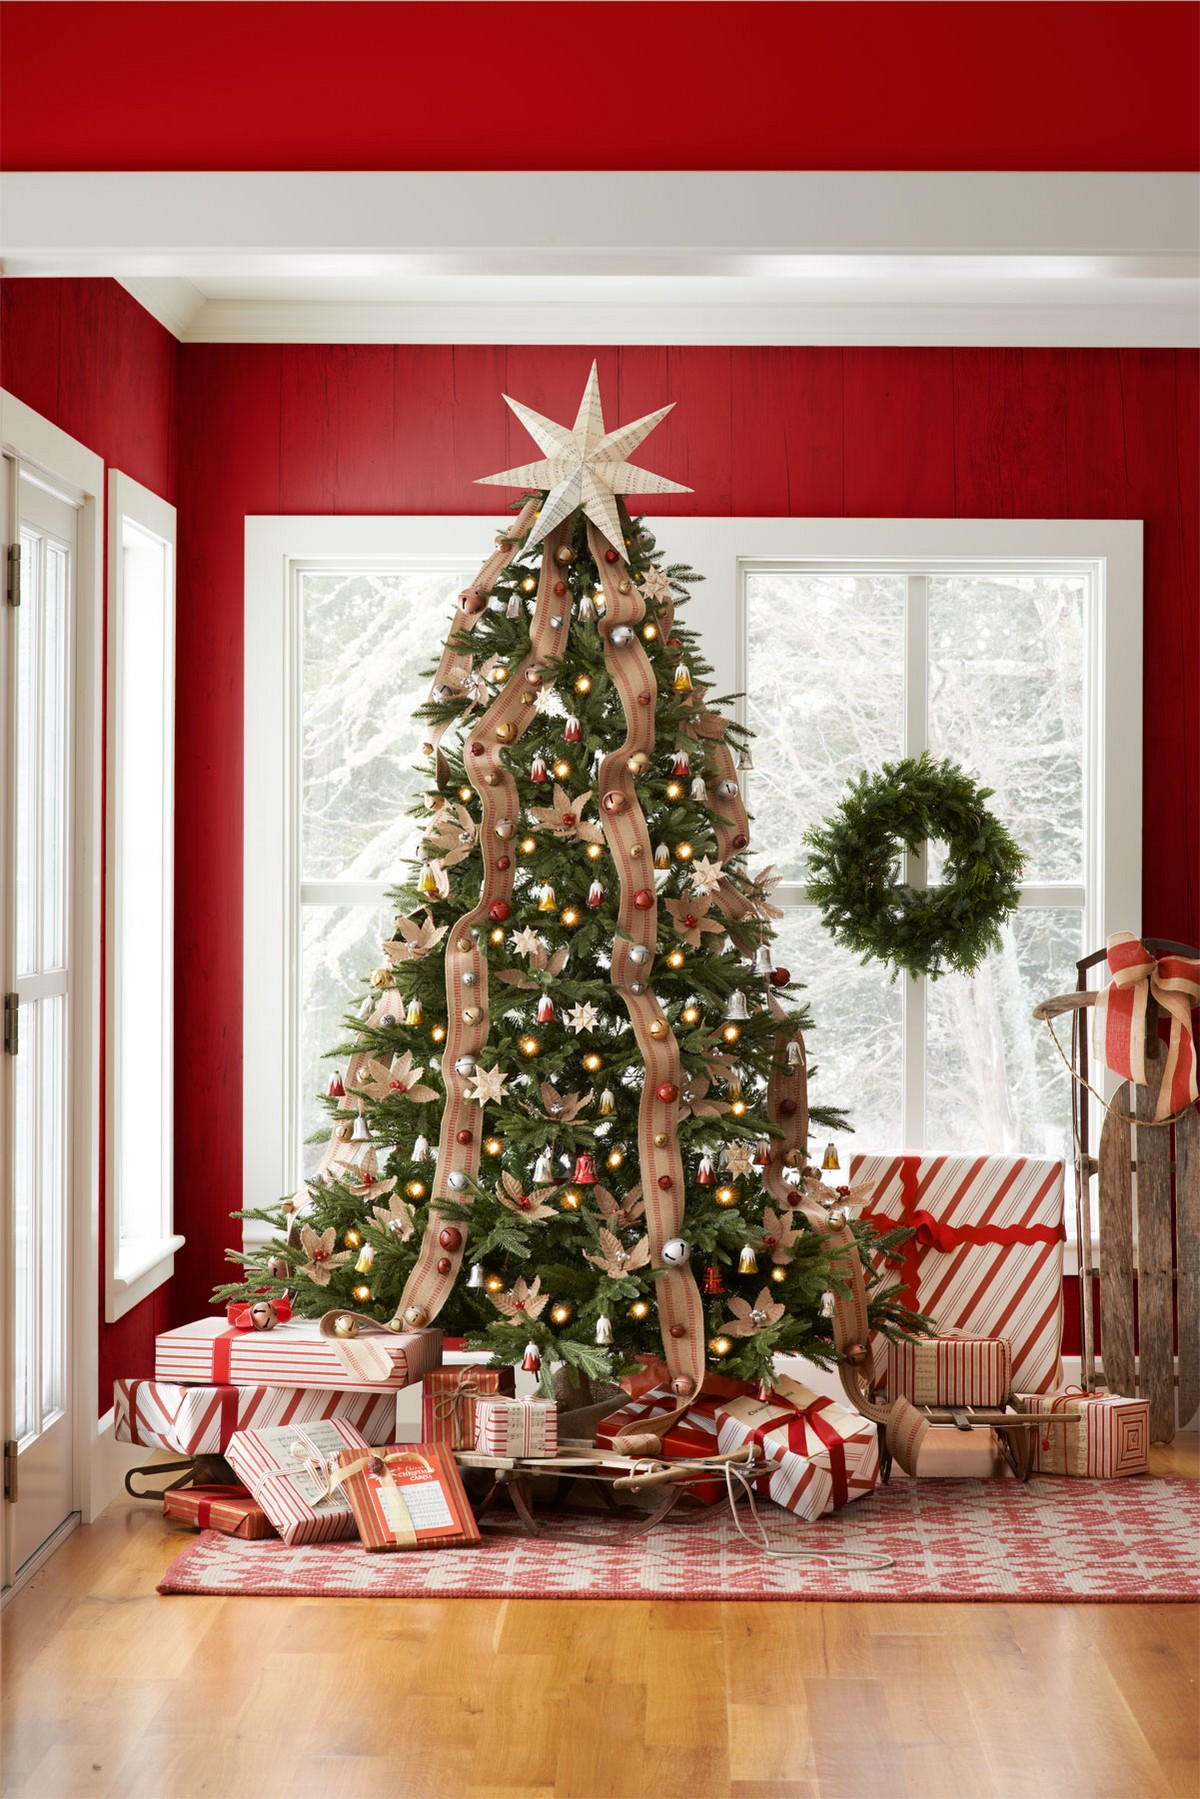 6 Mesmerizing Ways To Decor Your Christmas Tree This Holiday | Streets are already starting to shine with all of the traditional fairy lights that warm up people's hearts. #christmasdecor #christmastree #homedecor #fairylights #christmasspirit #interiordesign  6 Mesmerizing Ways To Decor Your Christmas Tree This Holiday christmas tree jingle bells 1215